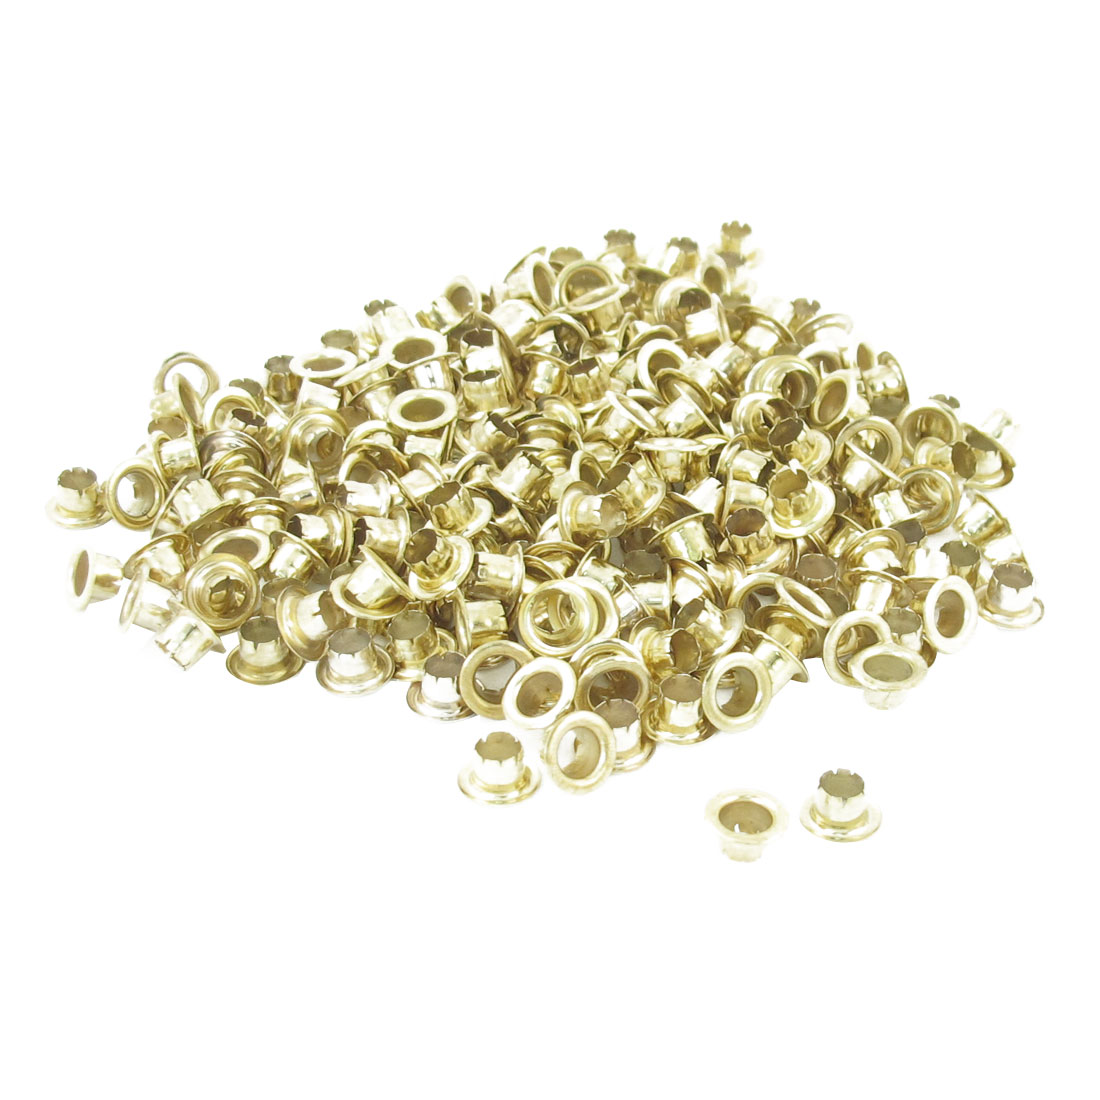 270 Pcs Gold Tone Metallic Round Shaped Eyelet Grommet for Paper